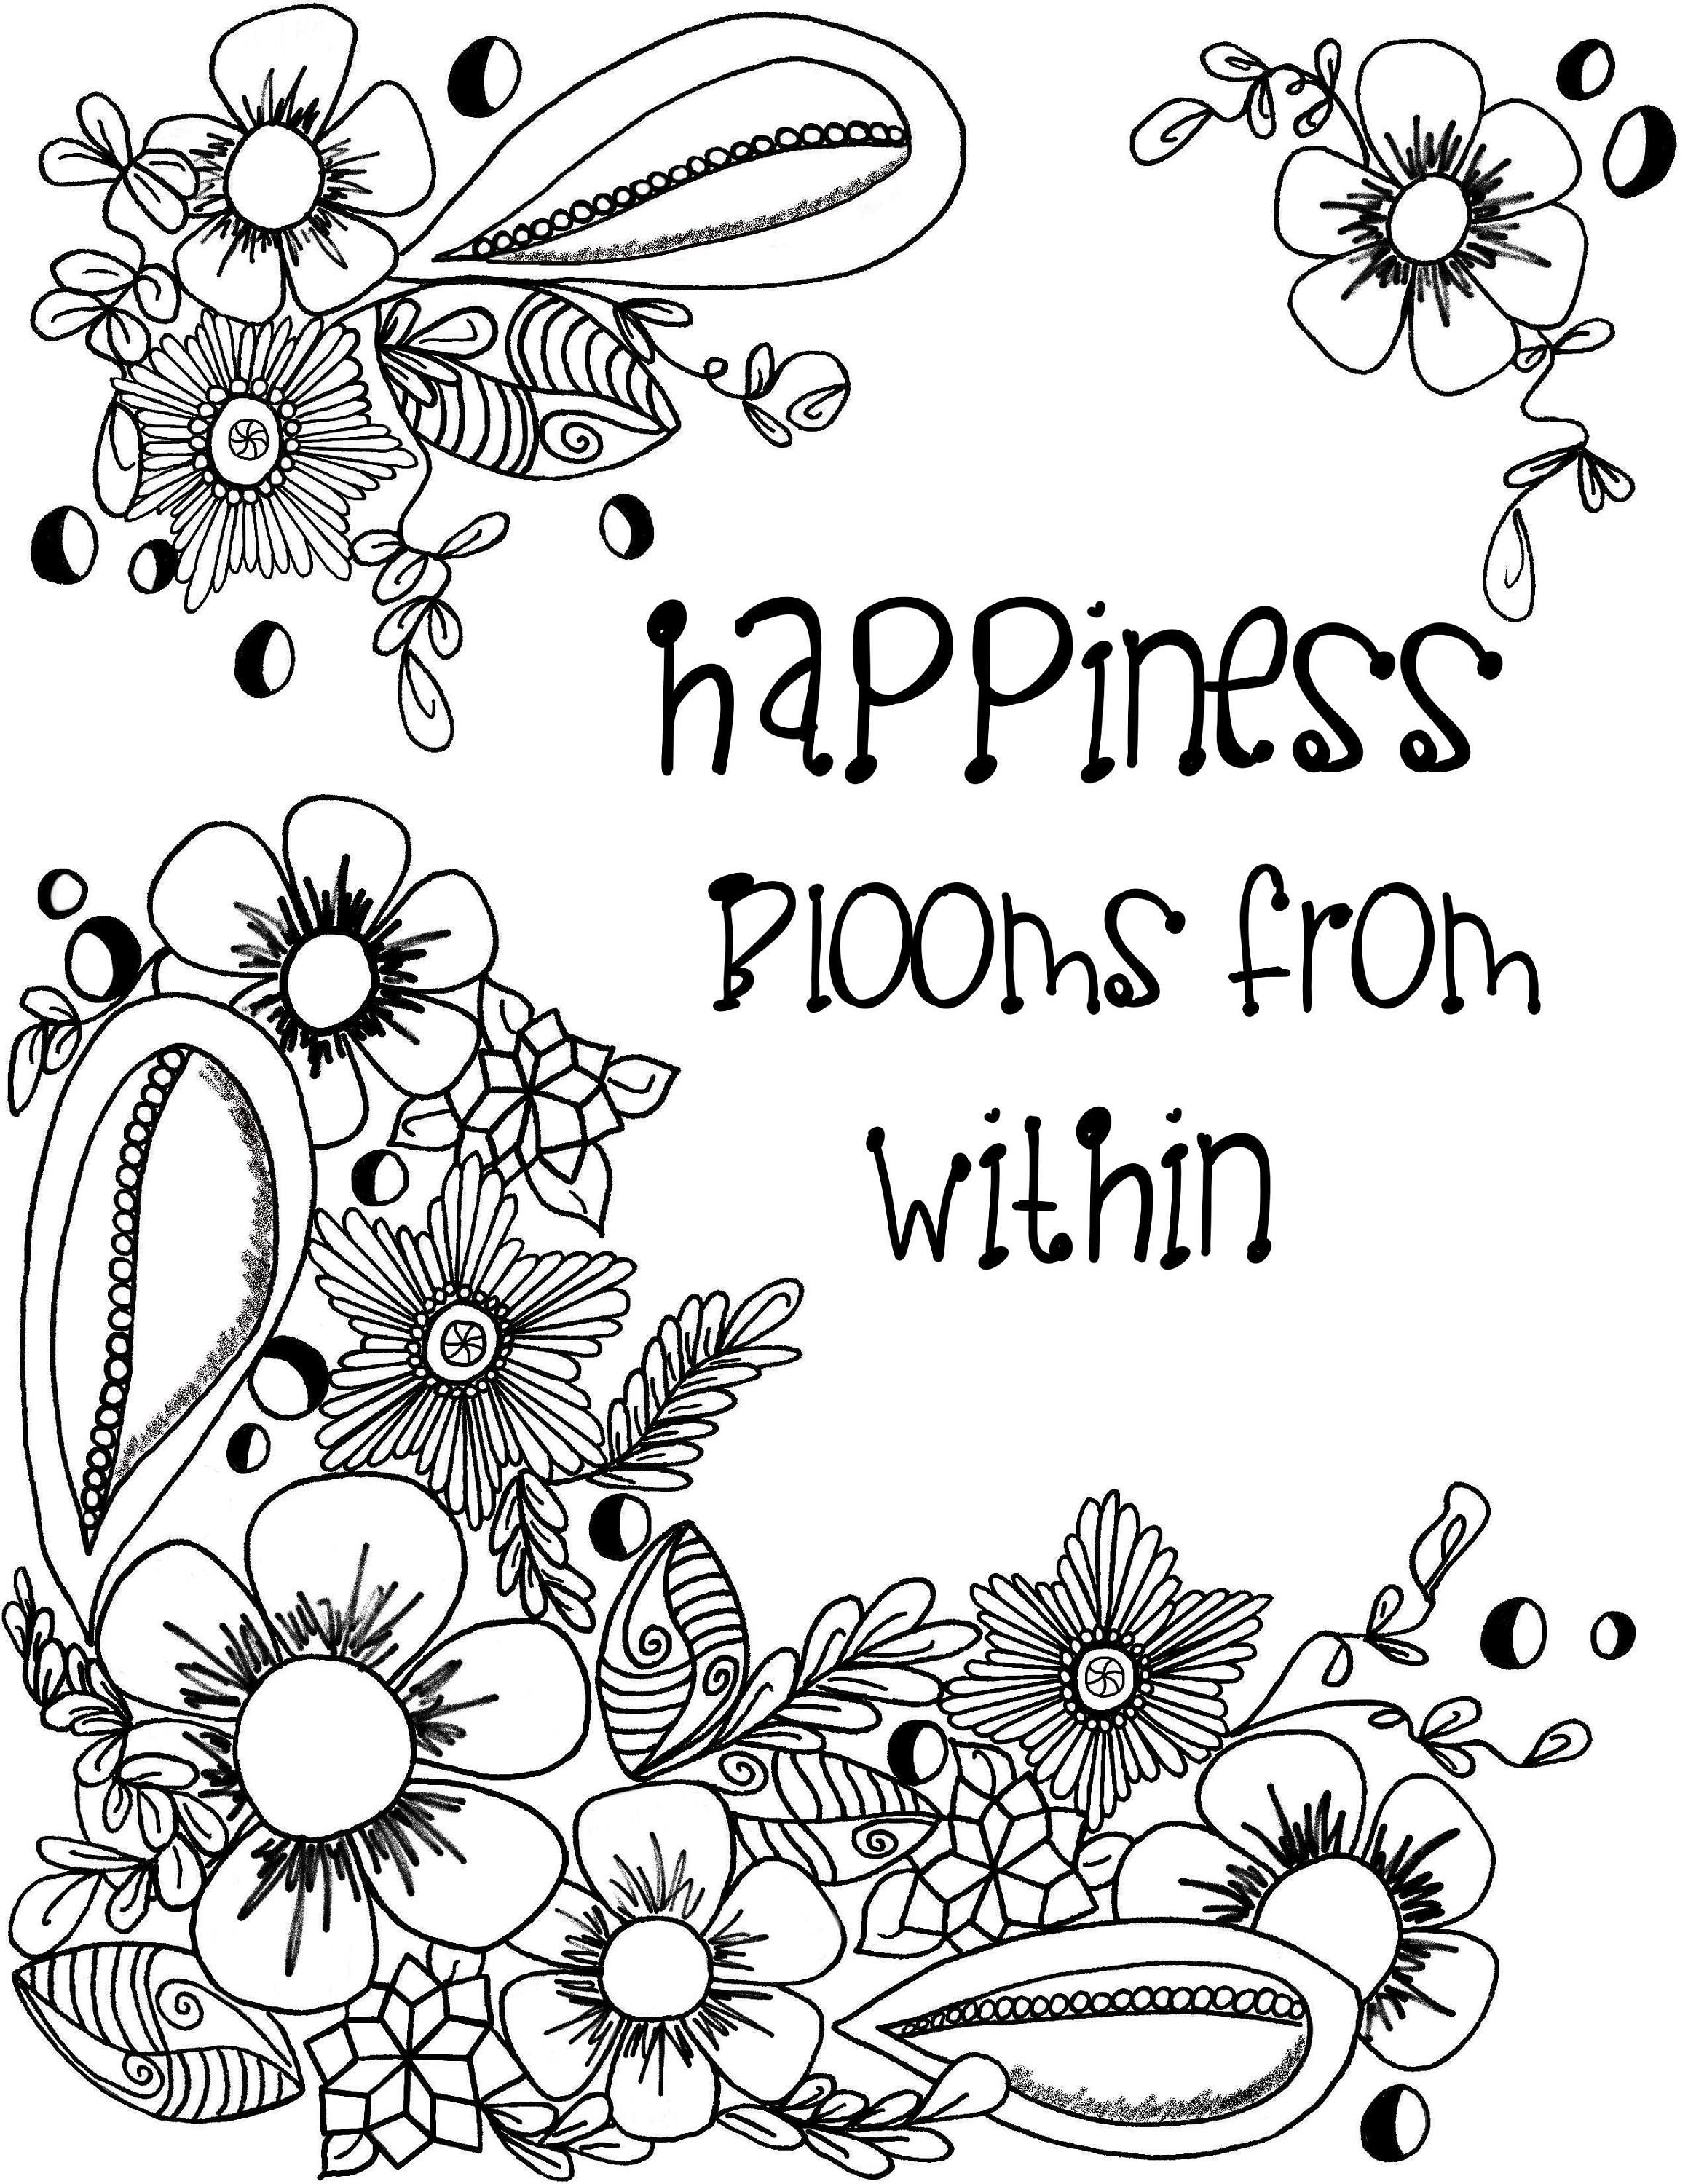 positive quotes coloring sheets quote coloring pages for adults and teens best coloring positive quotes coloring sheets